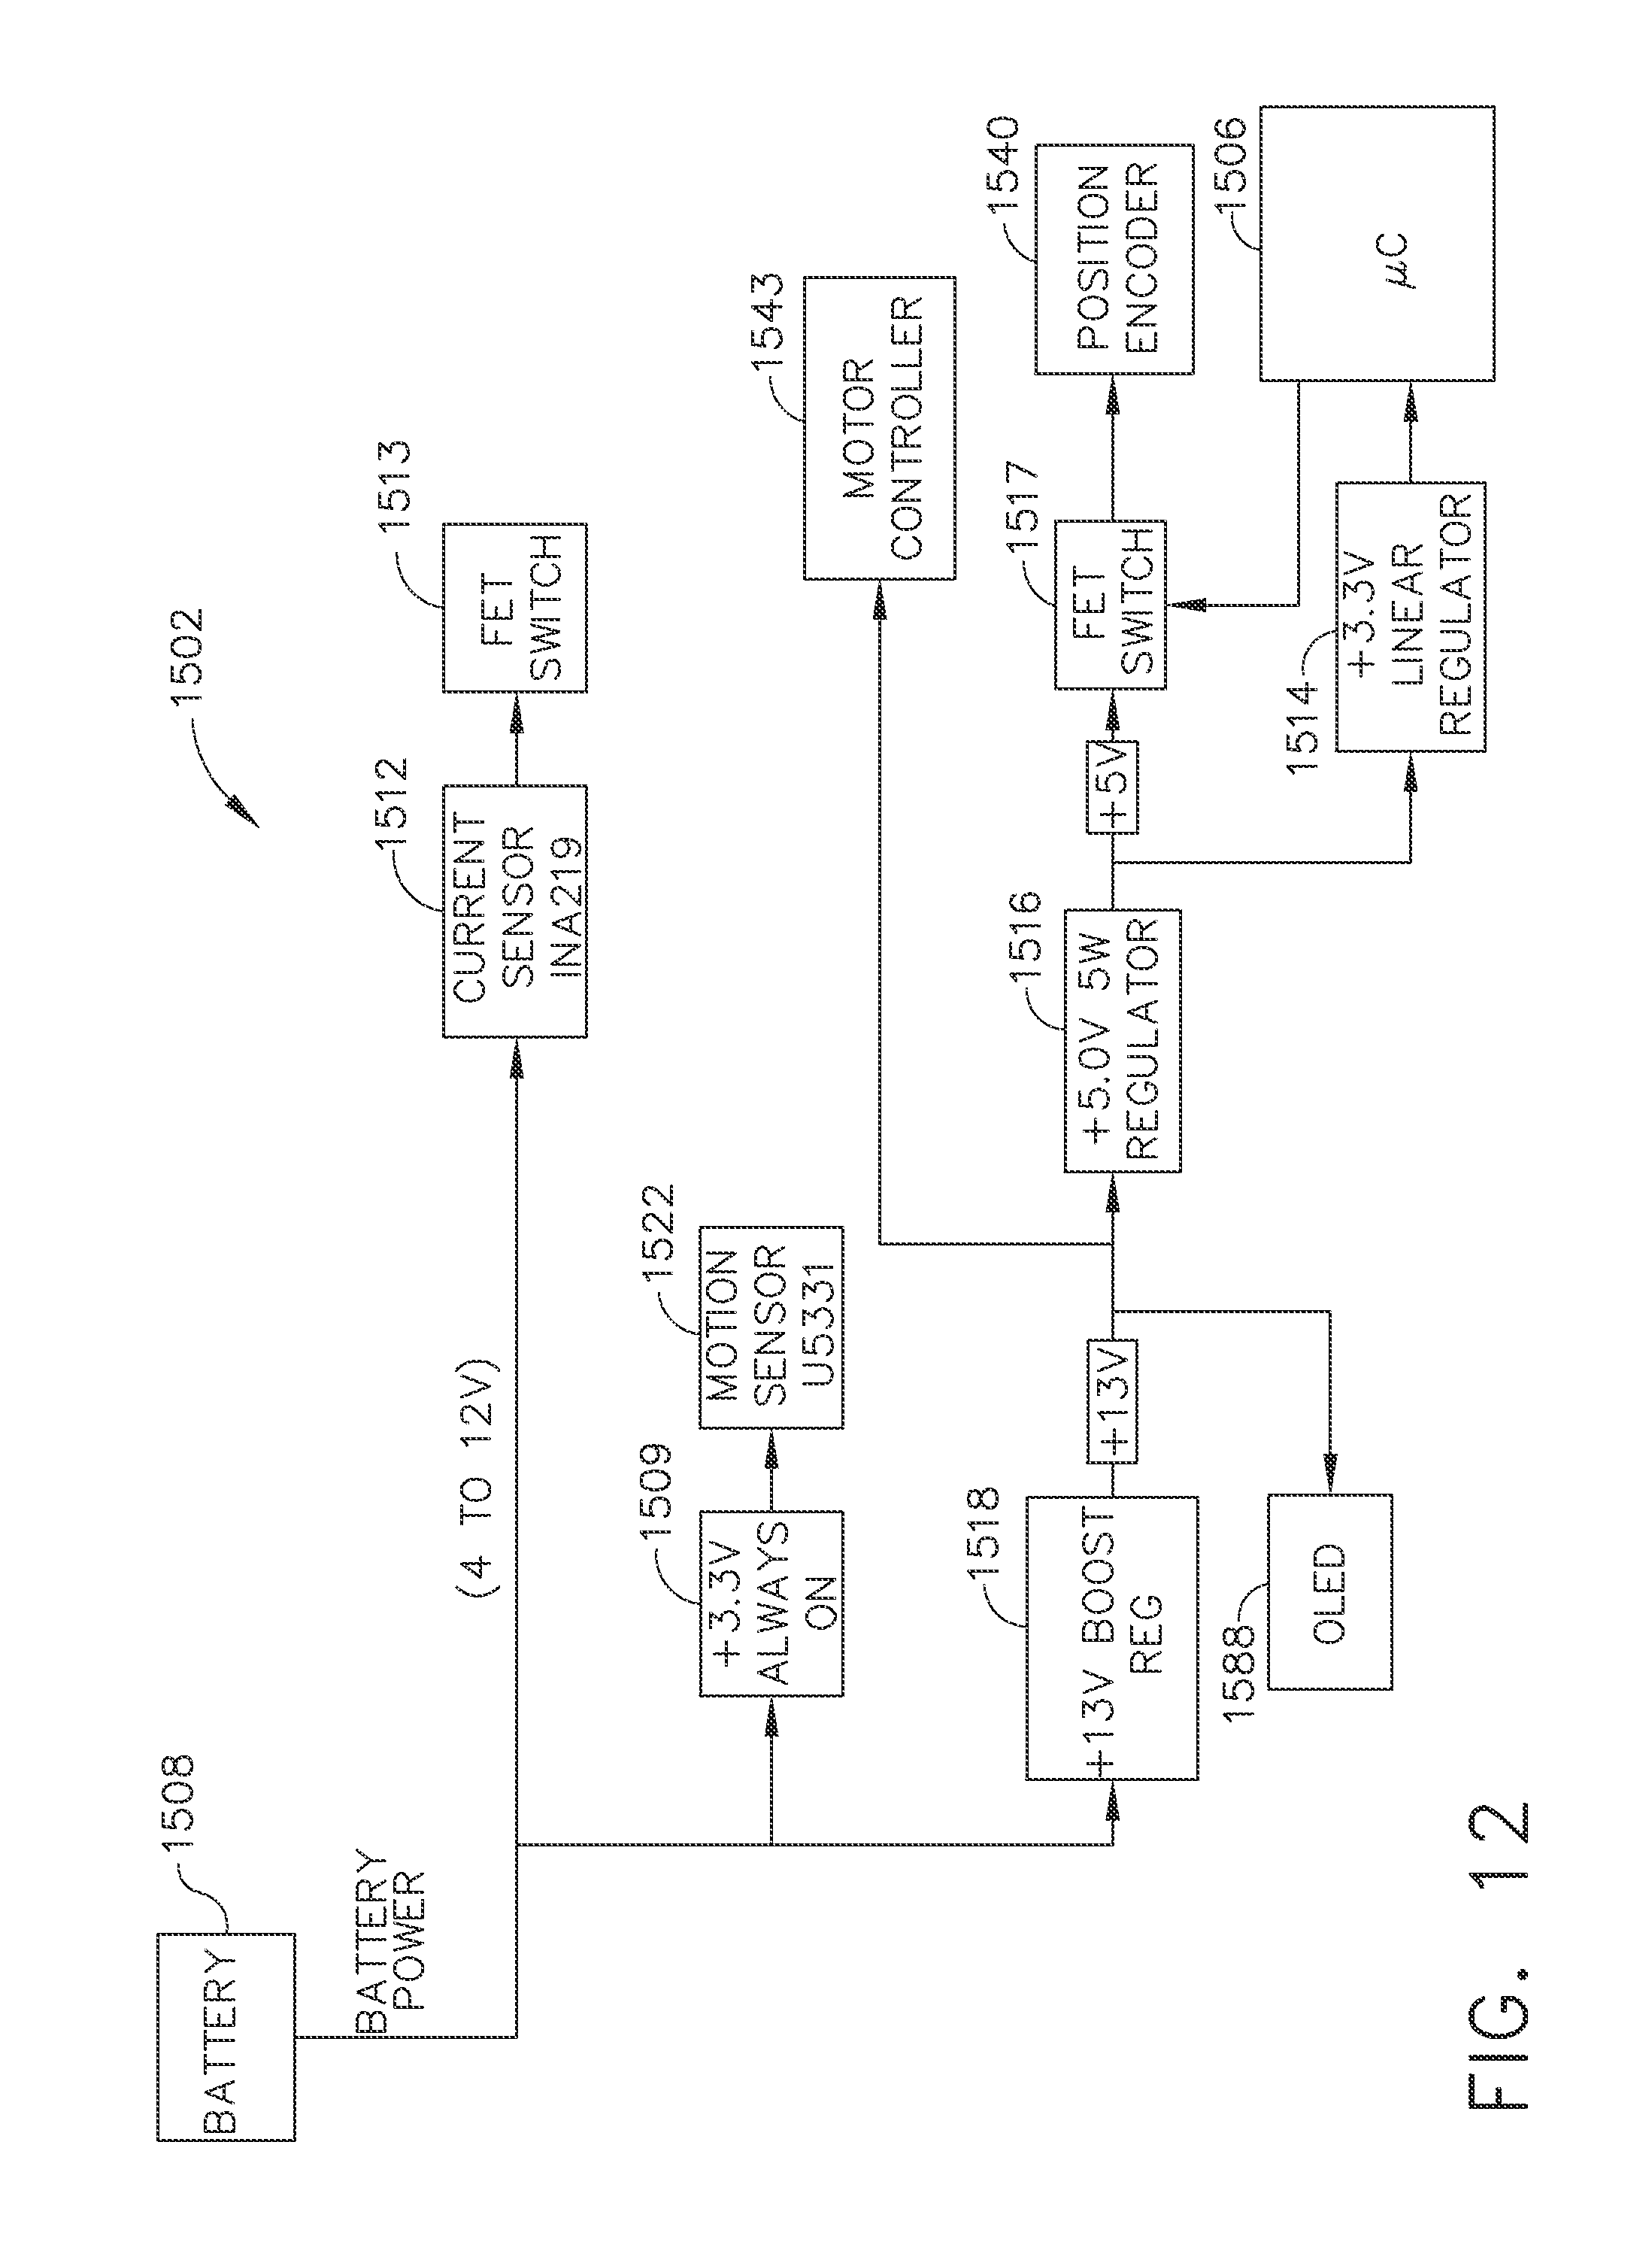 US20150272574A1 - Power management through sleep options of